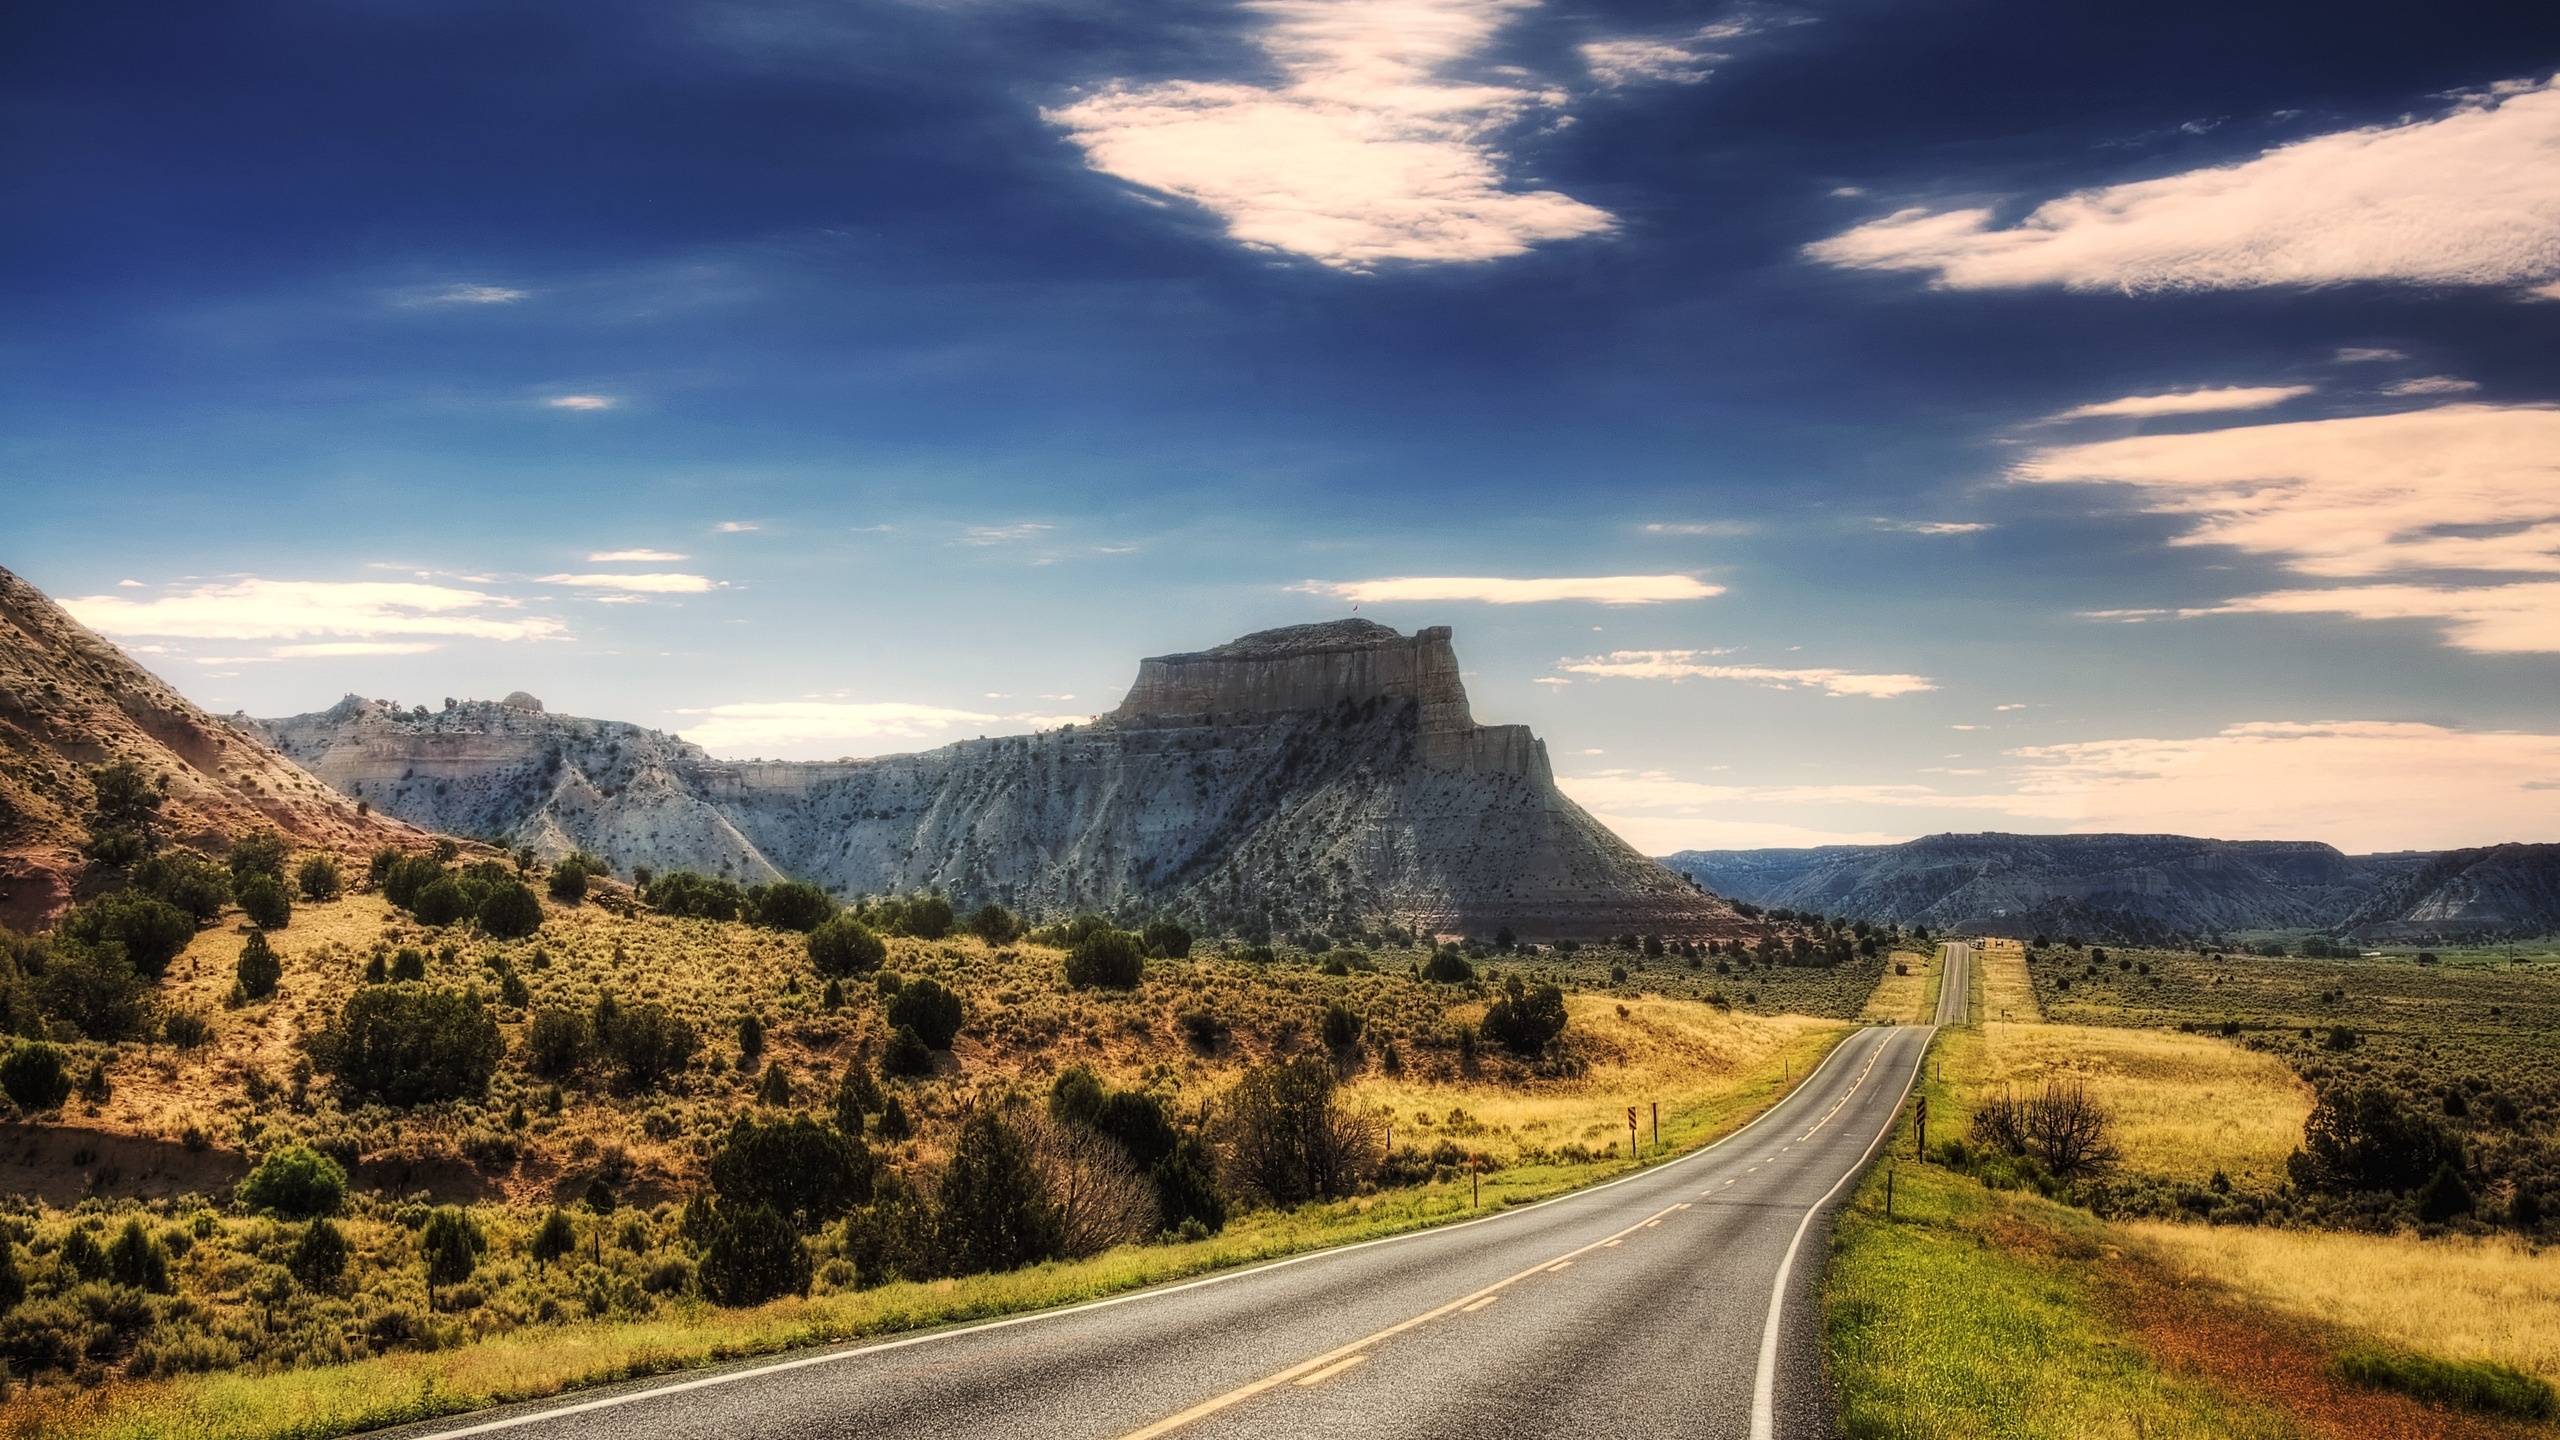 Mountains roads best widescreen HD Wallpaper